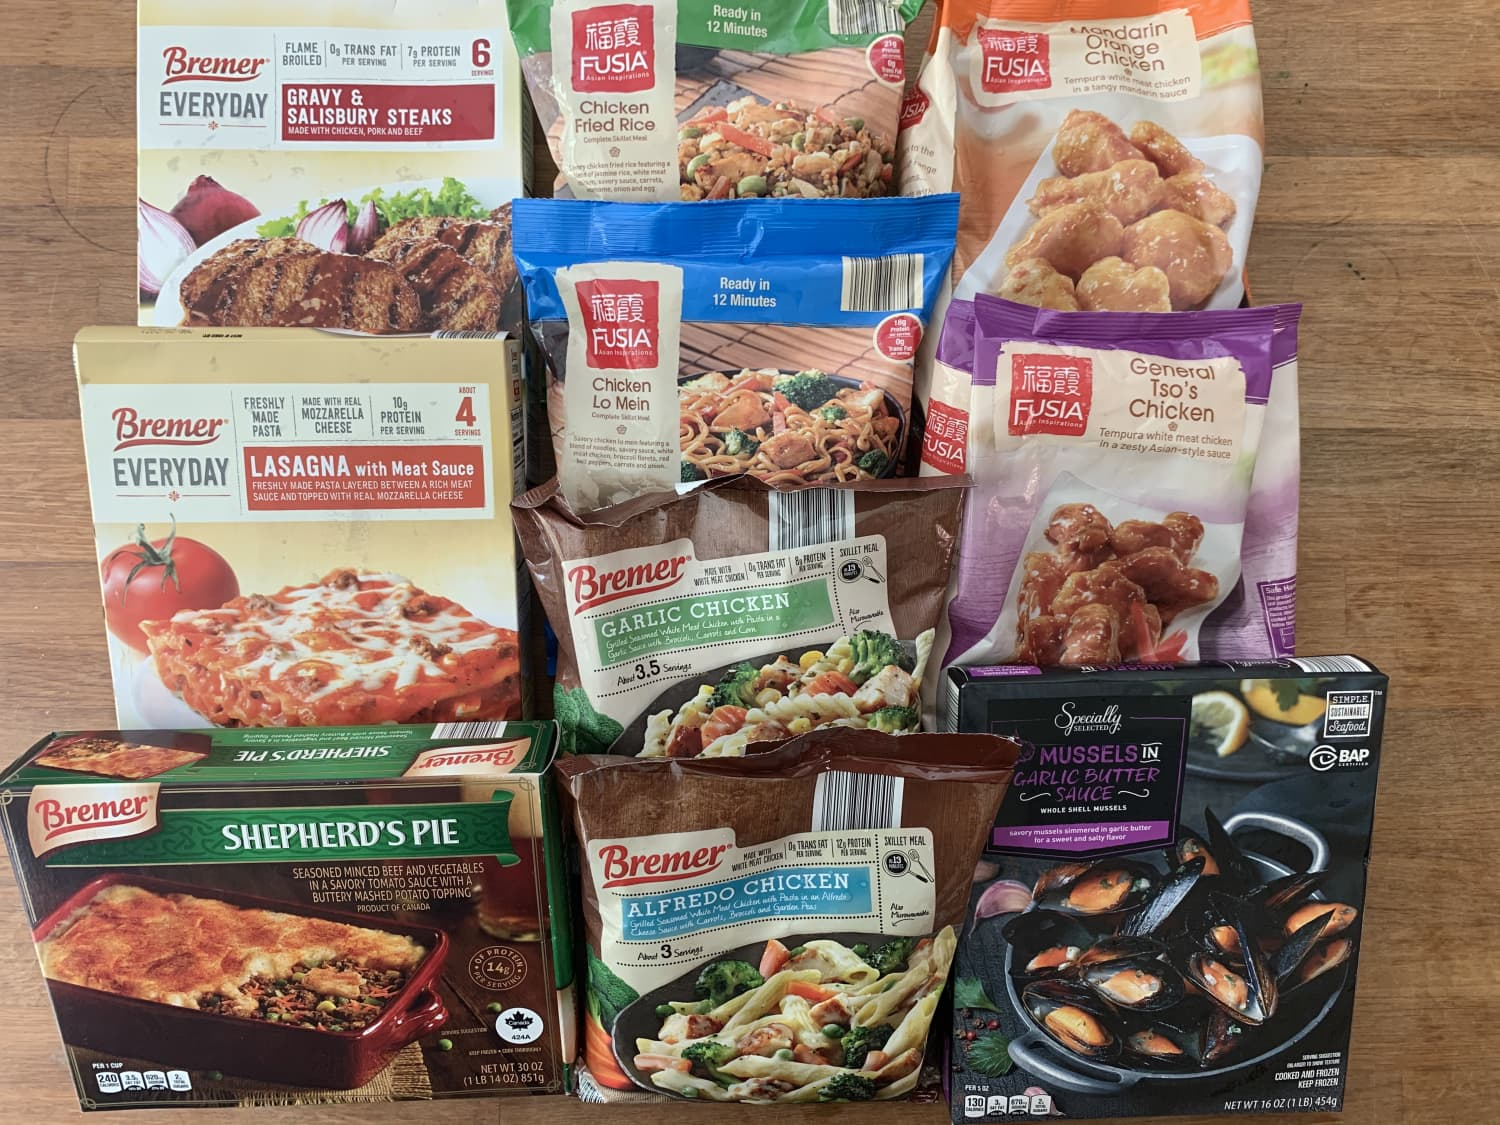 I Tried All of Aldi's Frozen Dinners. Here are the Best 3.